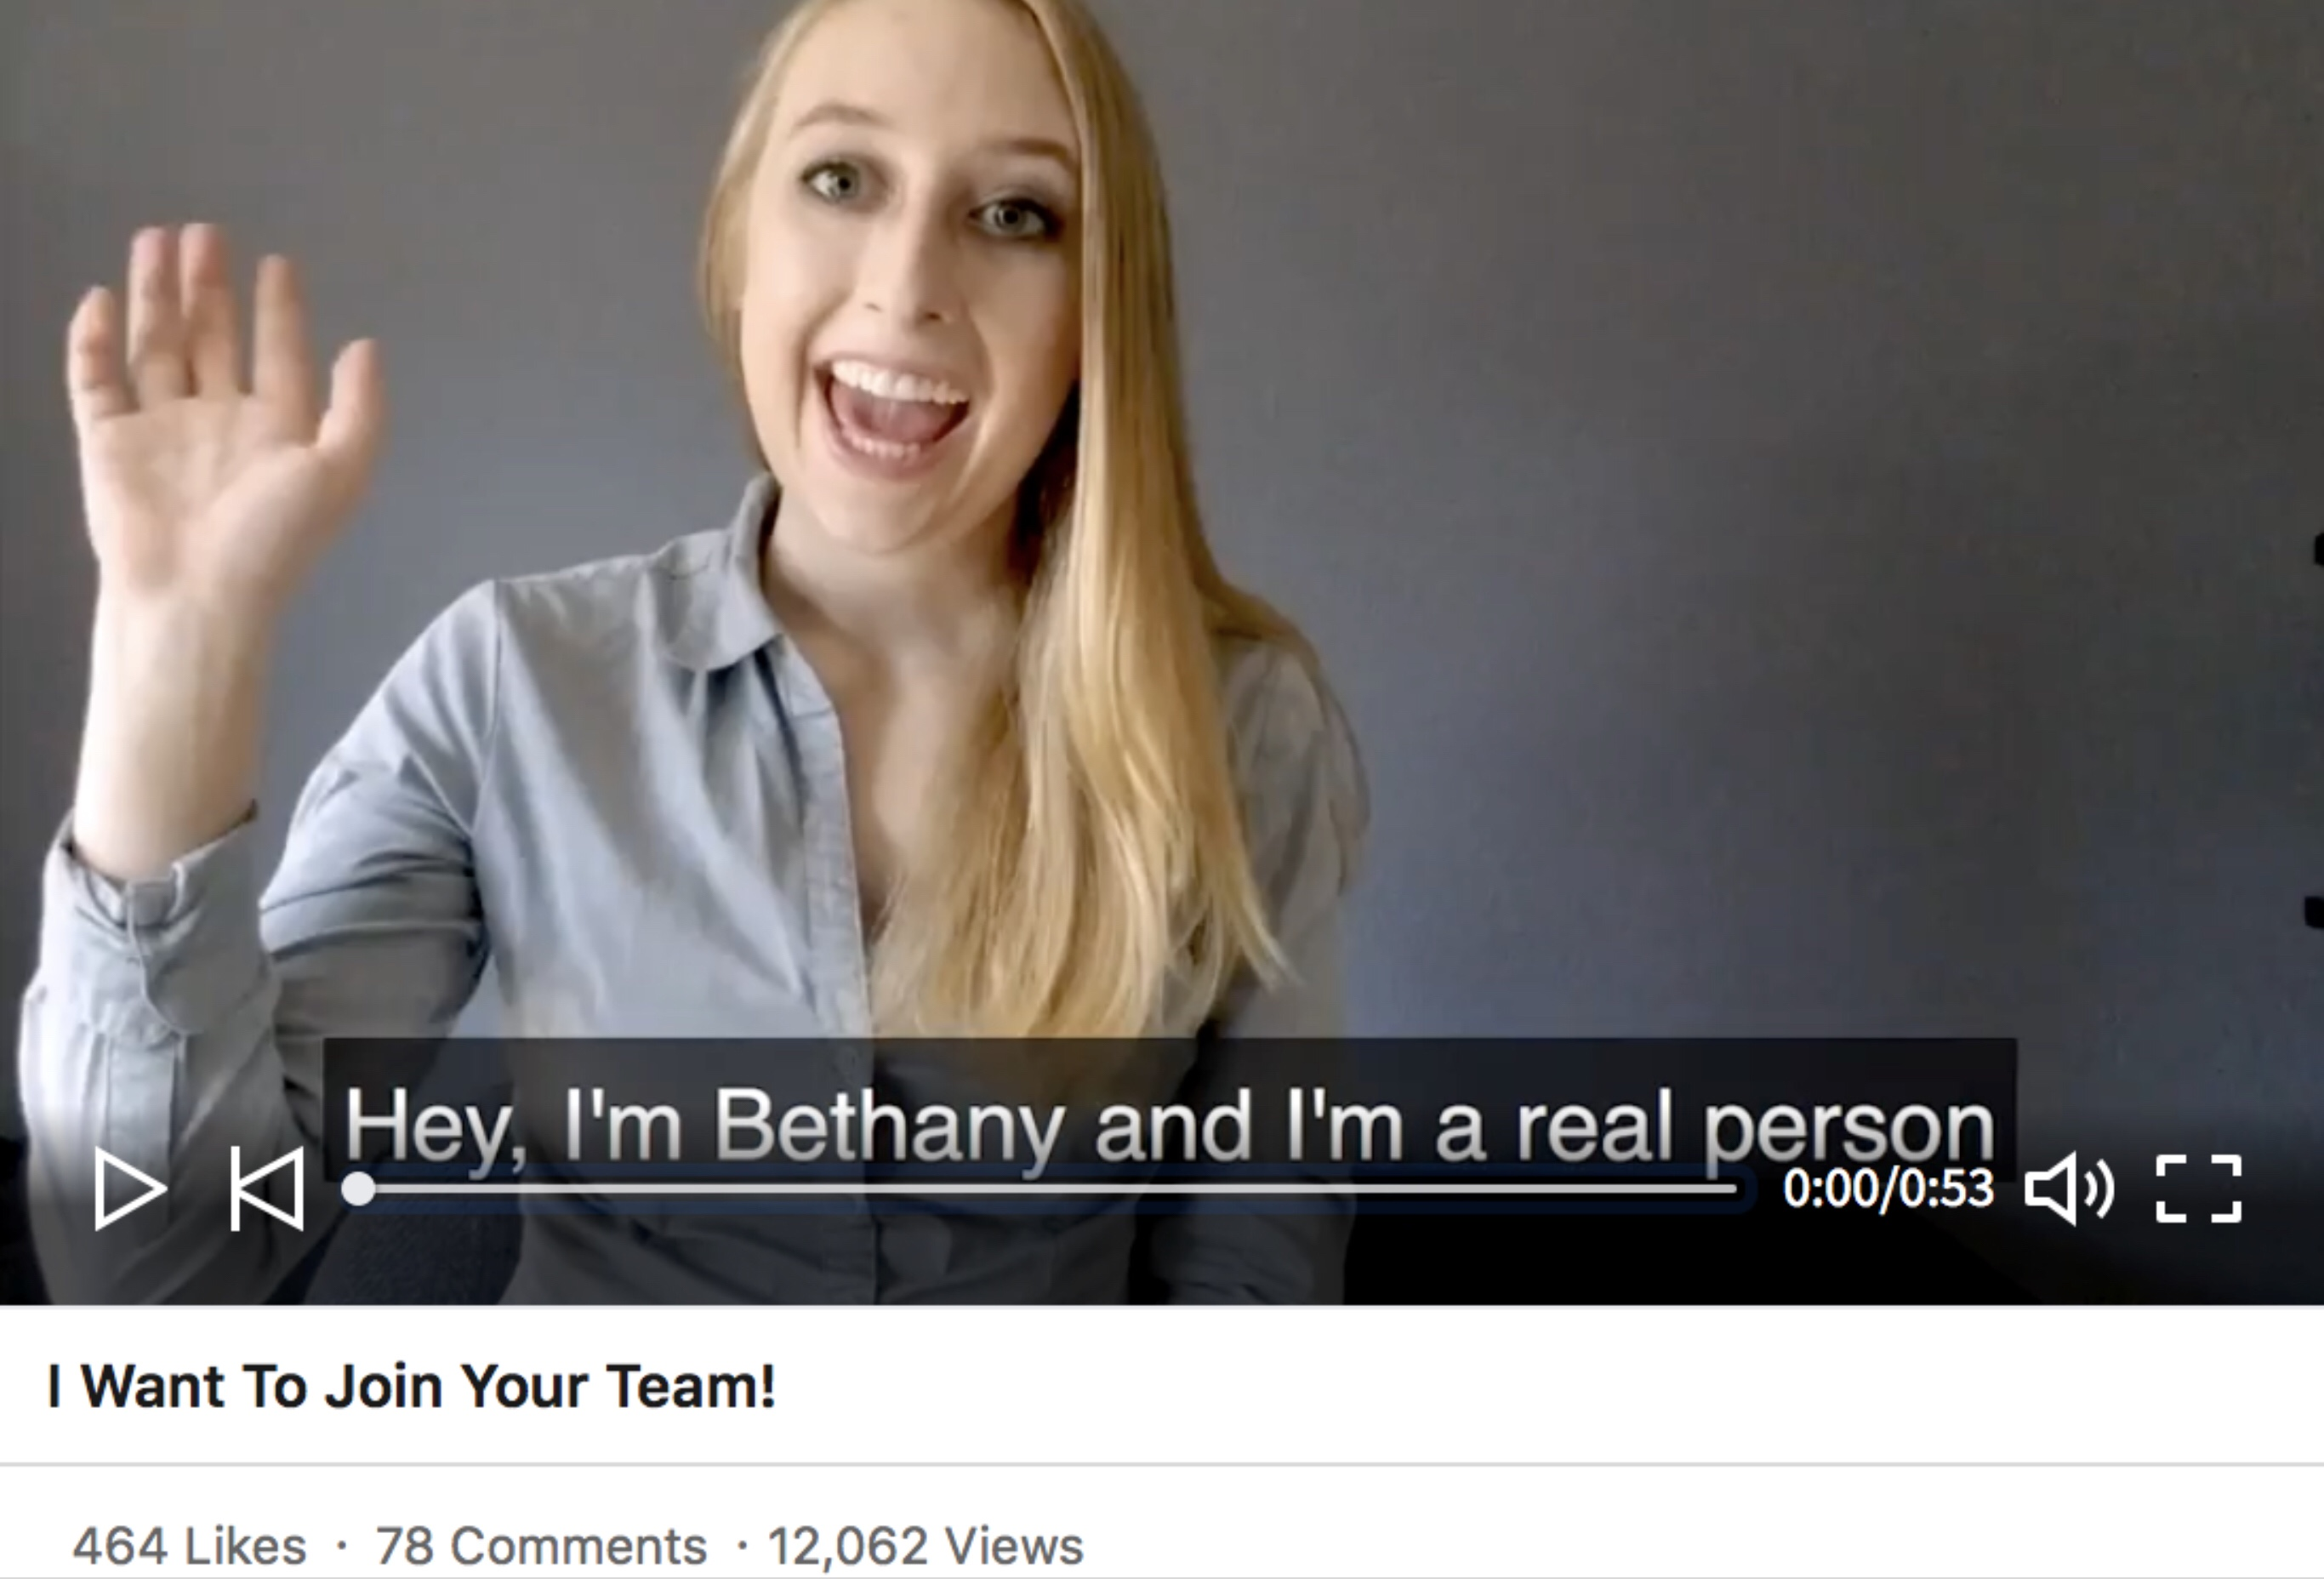 A screenshot of the Hire Bethany campaign video